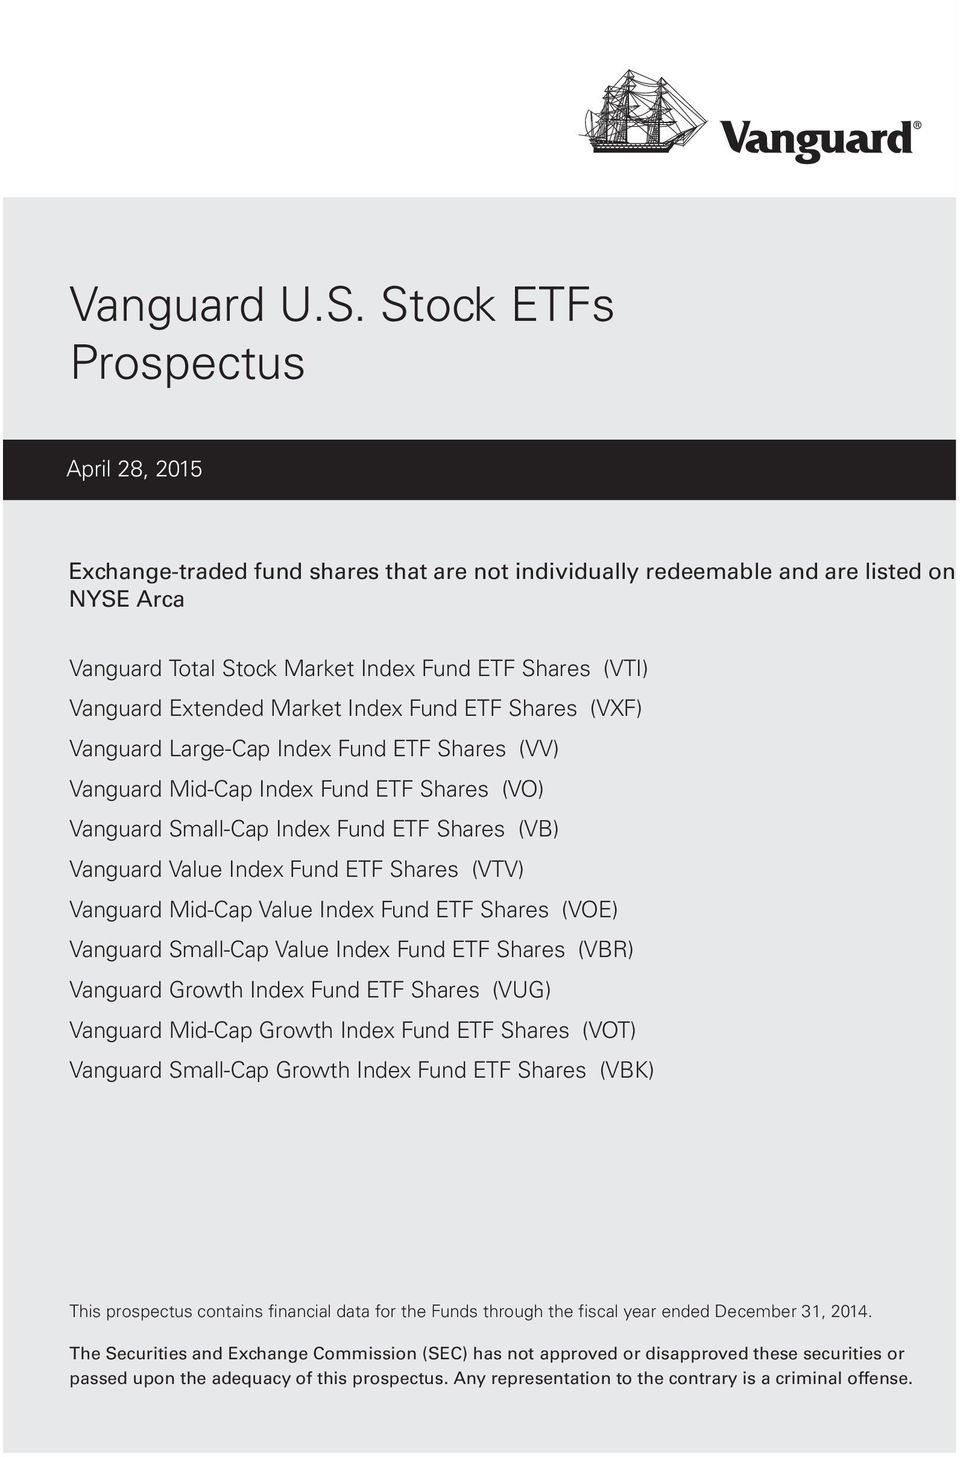 Extended Market Index Fund ETF Shares (VXF) Vanguard Large-Cap Index Fund ETF Shares (VV) Vanguard Mid-Cap Index Fund ETF Shares (VO) Vanguard Small-Cap Index Fund ETF Shares (VB) Vanguard Value